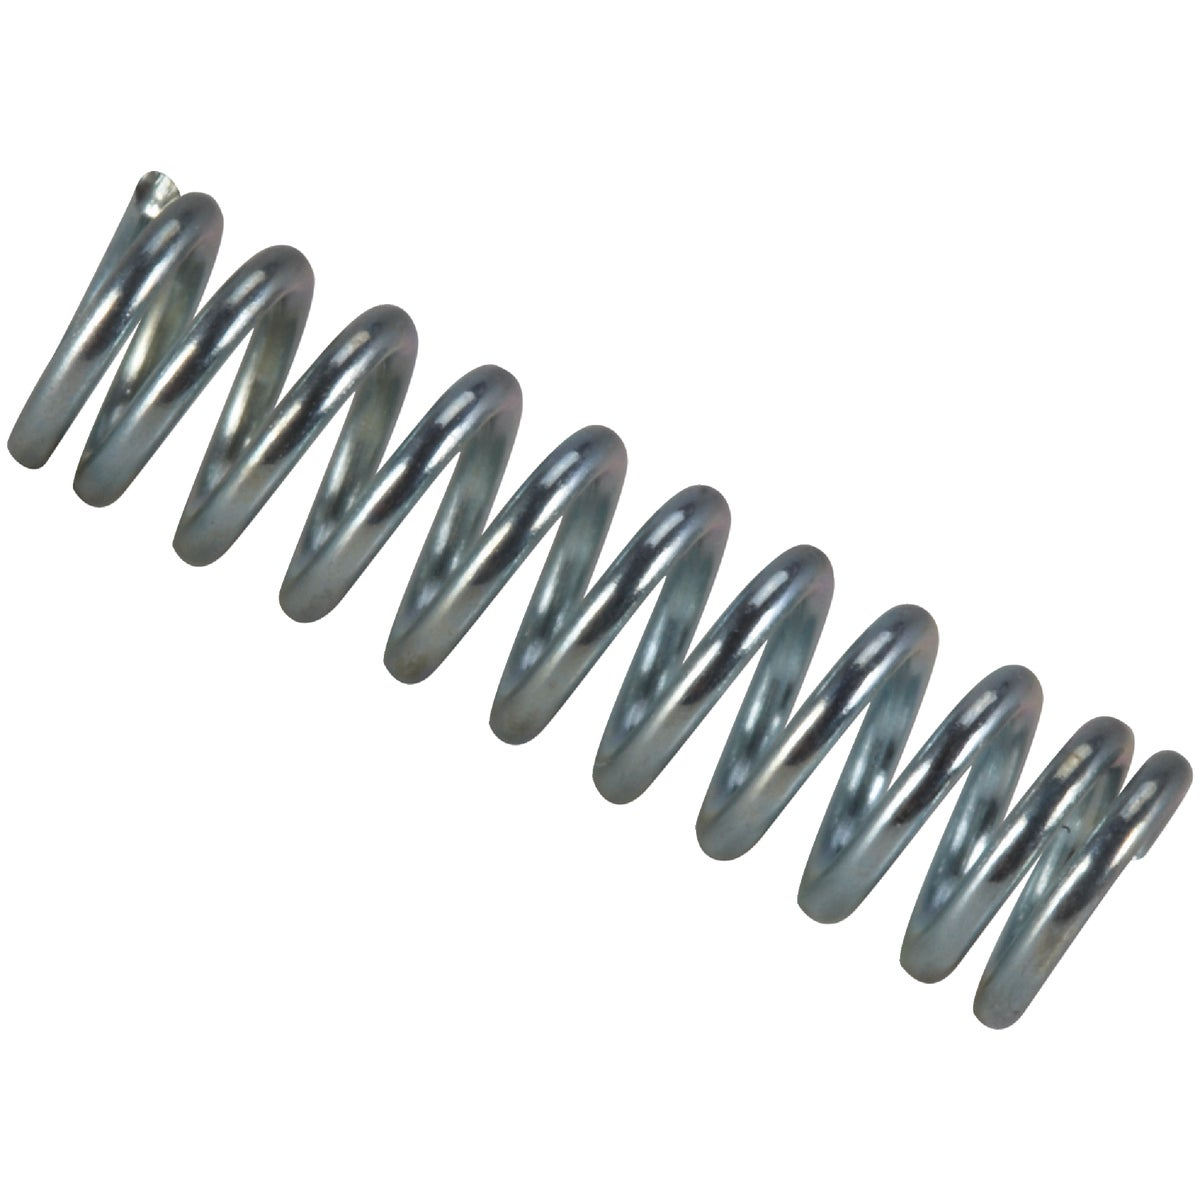 COMPRESSION SPRING - C-650 by Century Spring Corp